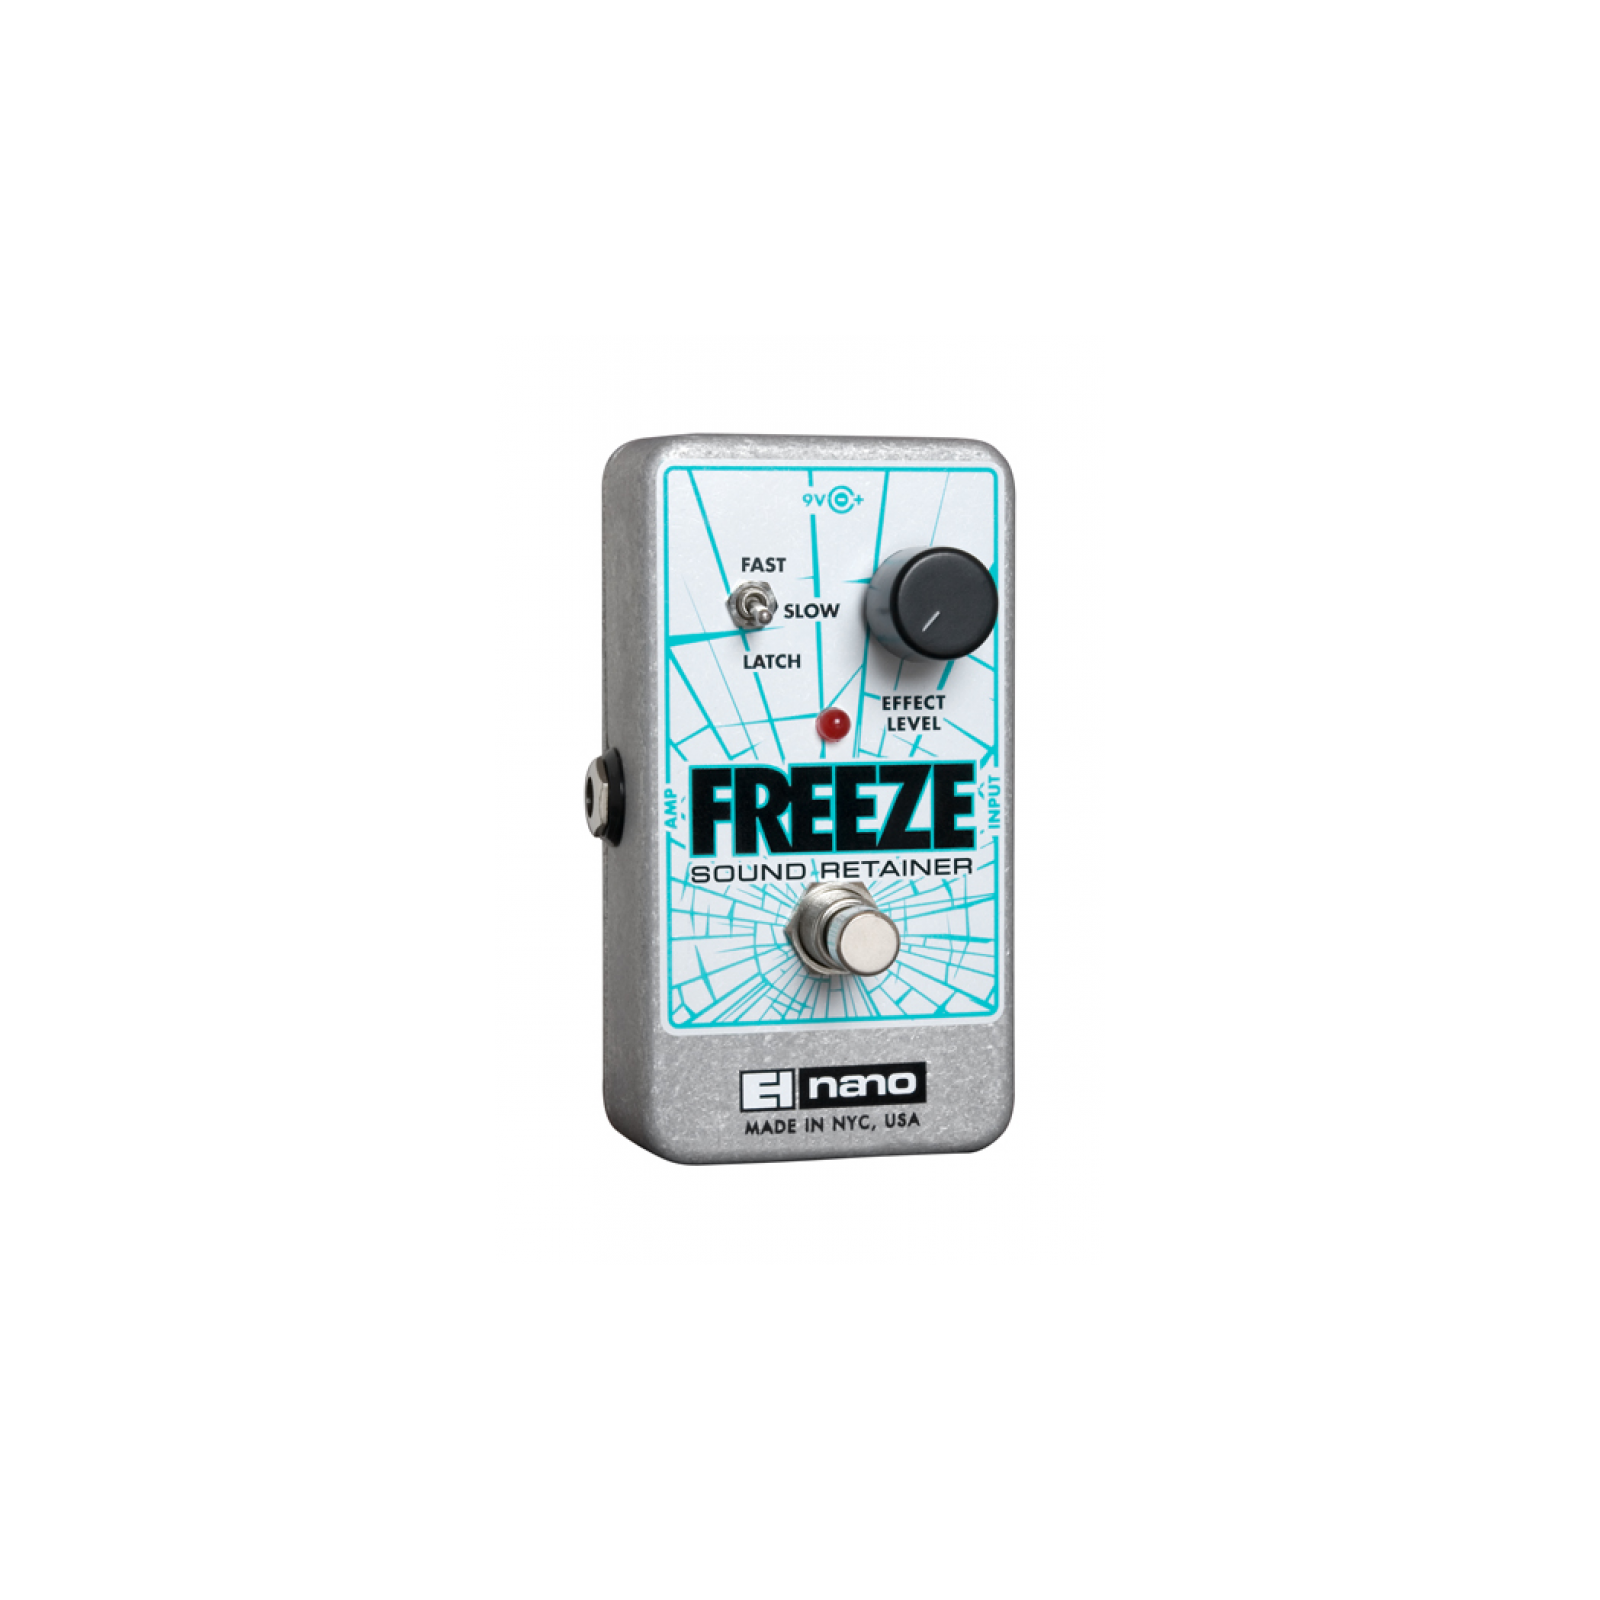 ELECTRO HARMONIX EHX FREEZE PEDAL - INCLUDES 240v POWER SUPPLY